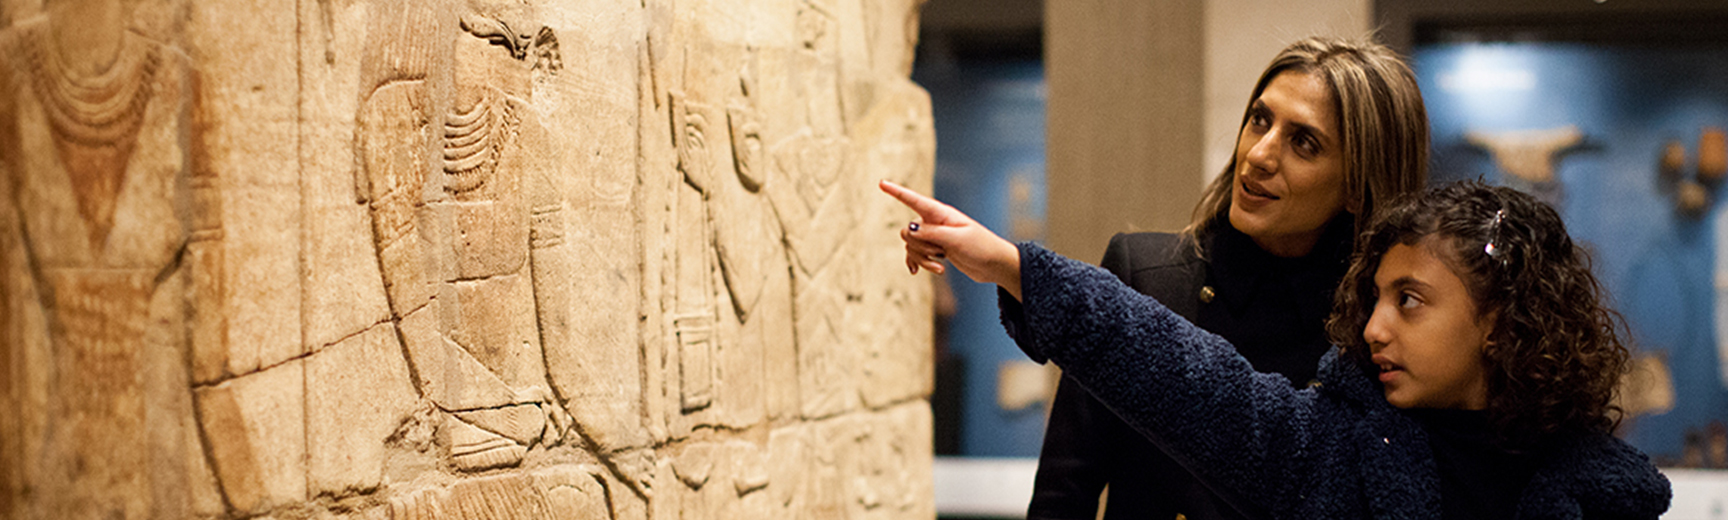 A young girl and her mother look at Egyptian reliefs in a museum gallery